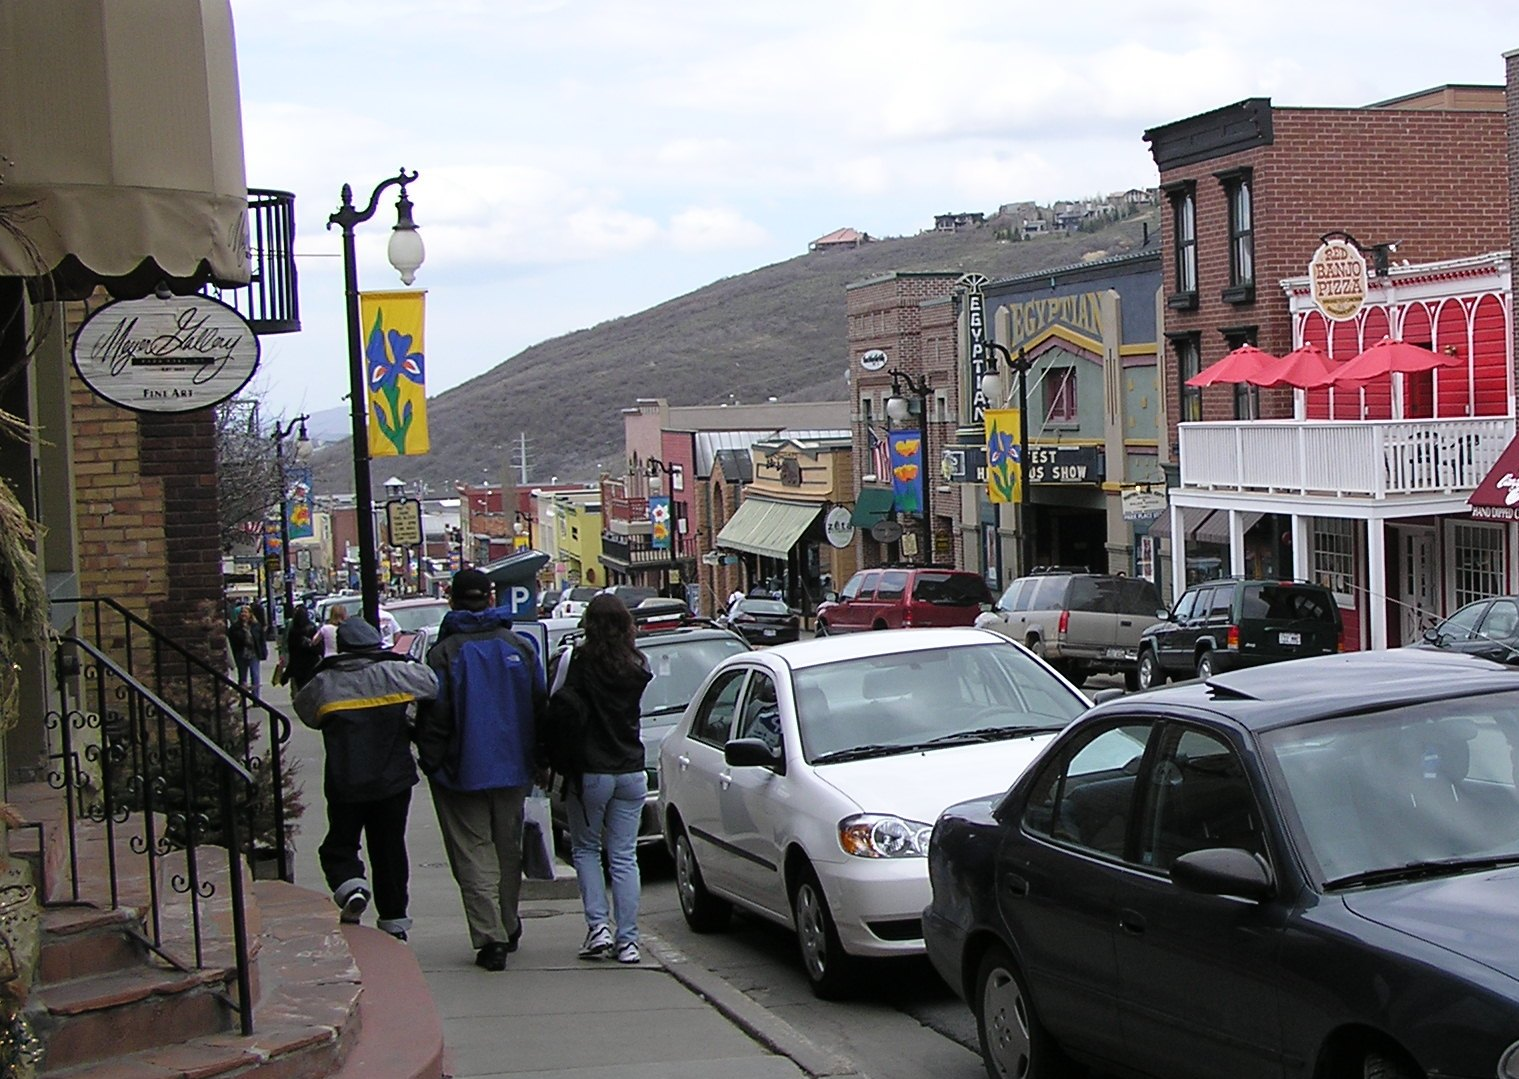 Looking down main street in Park City, Utah, USA